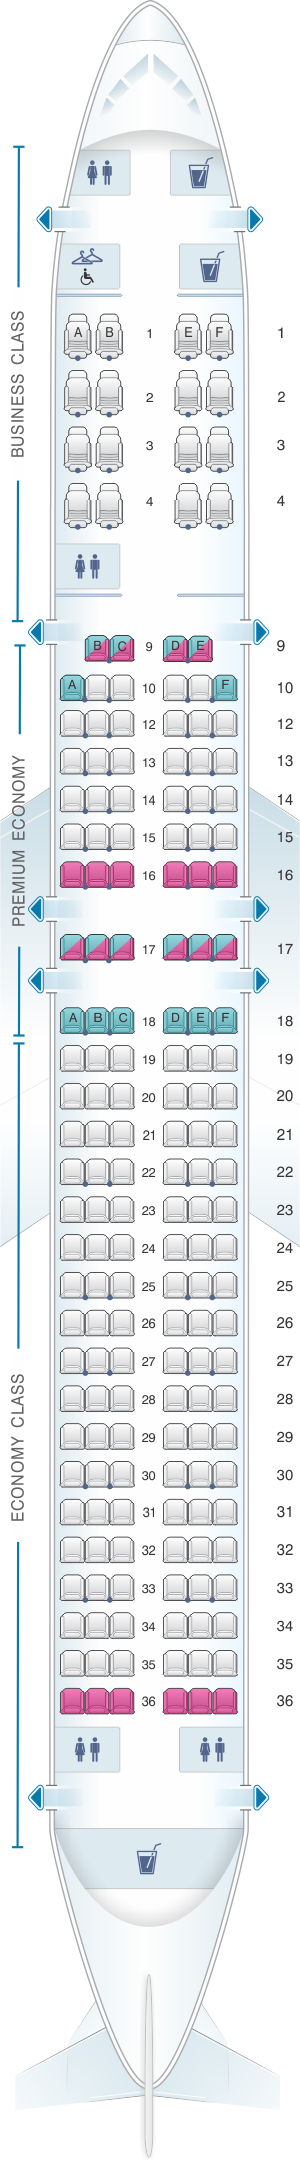 Seat map for American Airlines Boeing B757 International